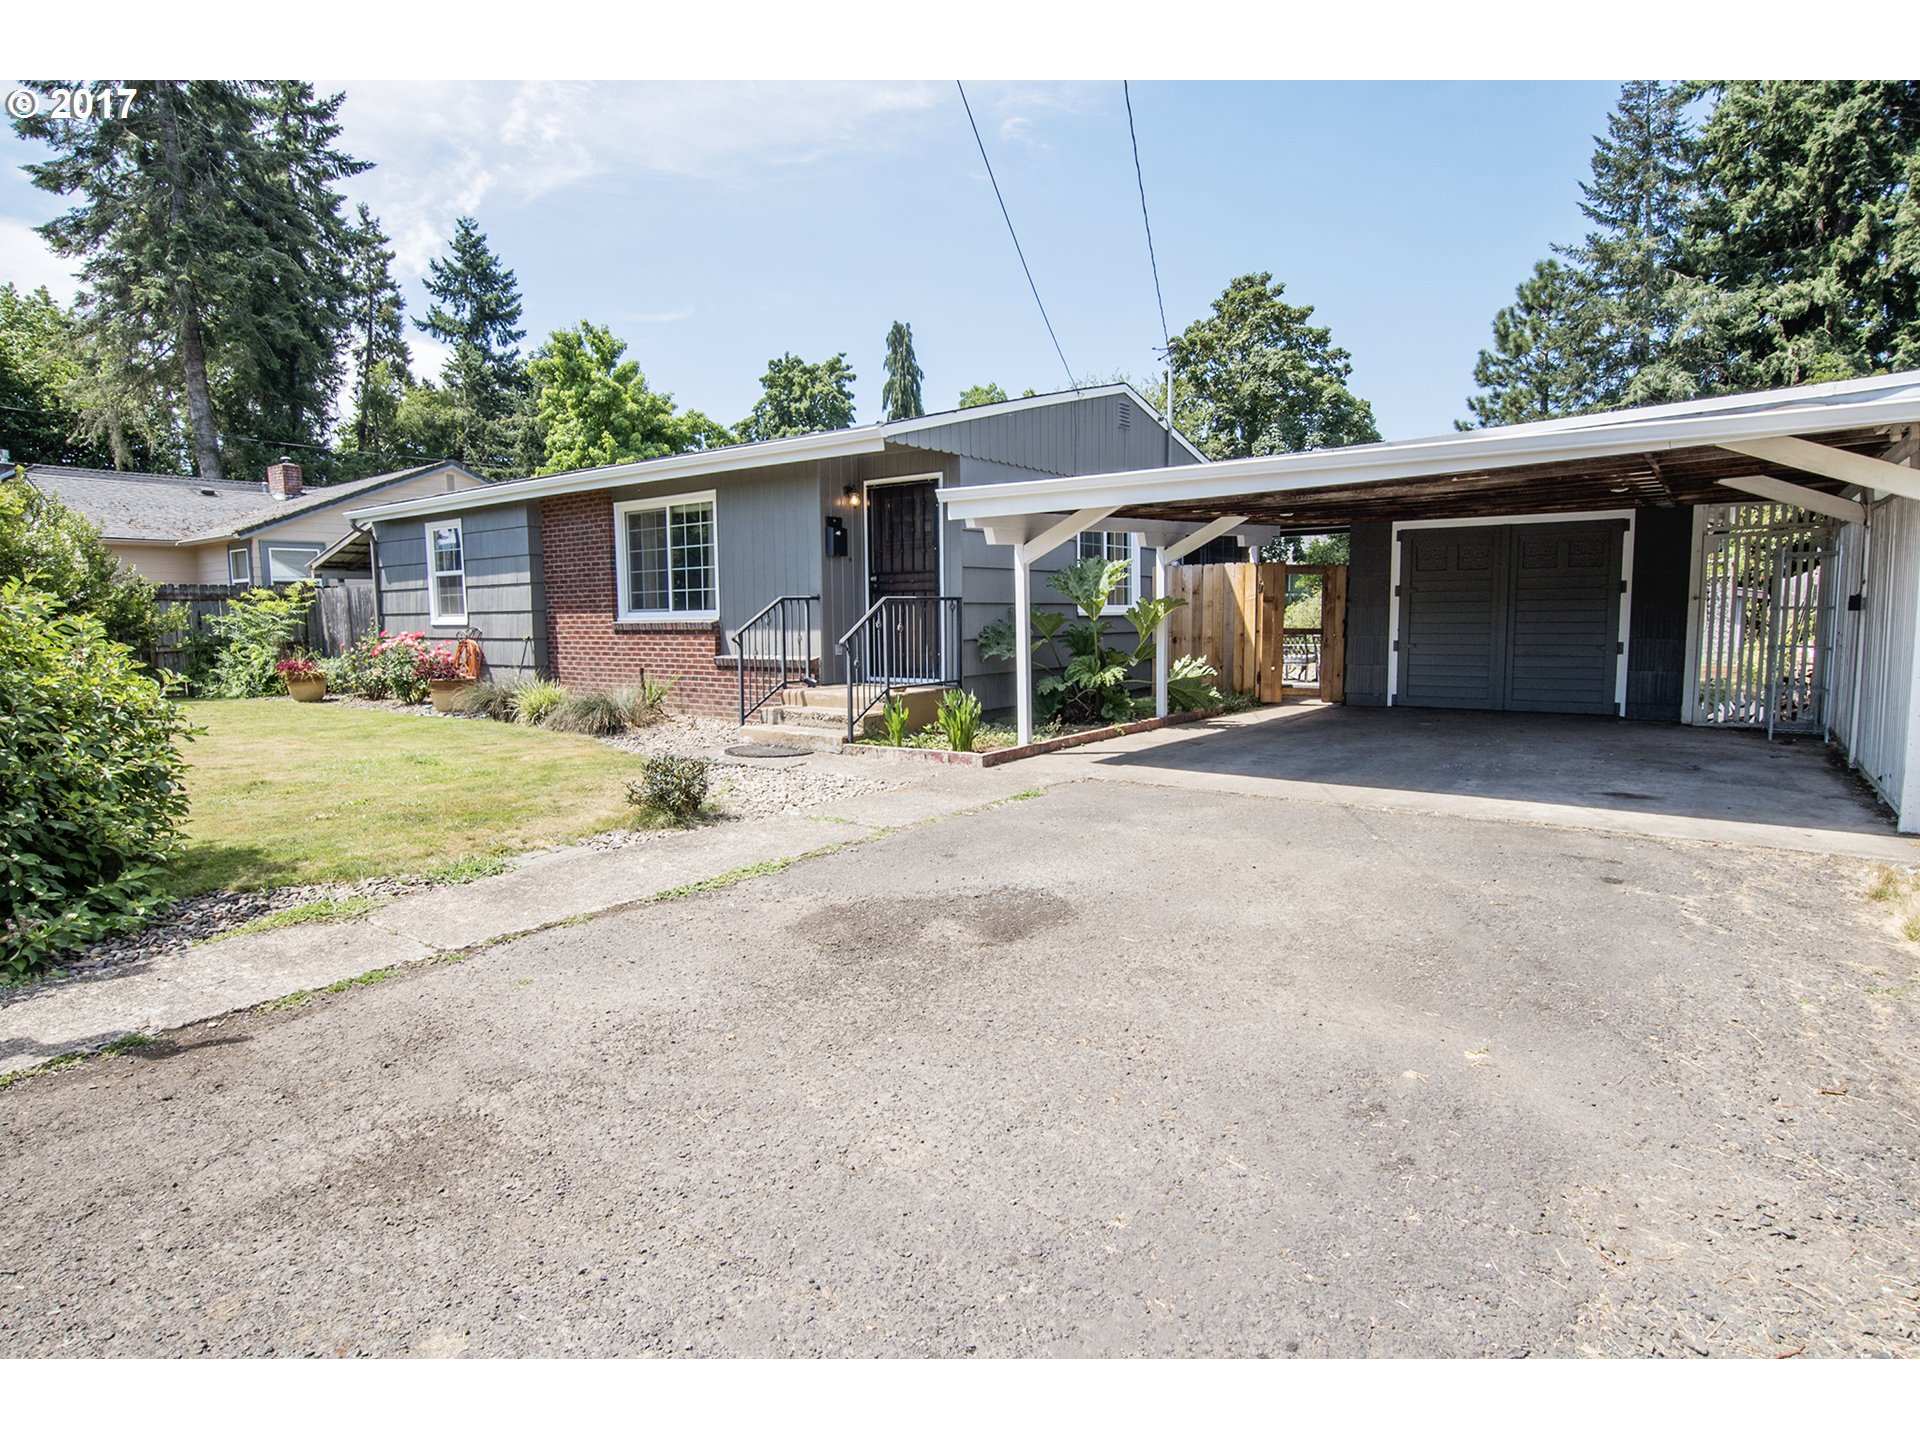 651 S 3RD ST, Cottage Grove, OR 97424